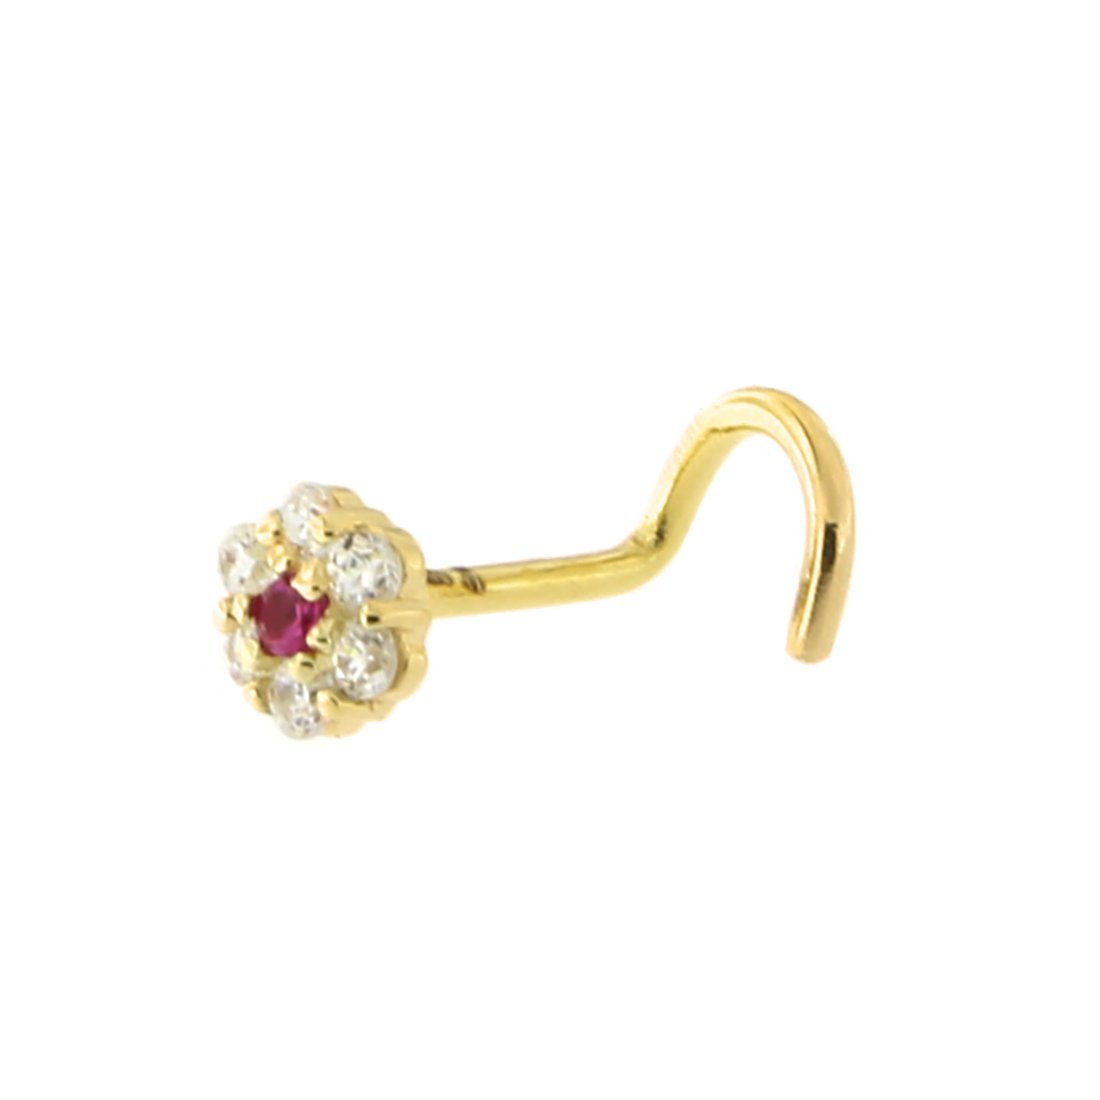 14k Yellow or White Gold Simulated Ruby and Cubic Zirconia 4mm Flower Nose Screw Stud Ring 20 Gauge Beauniq beauniq-22043